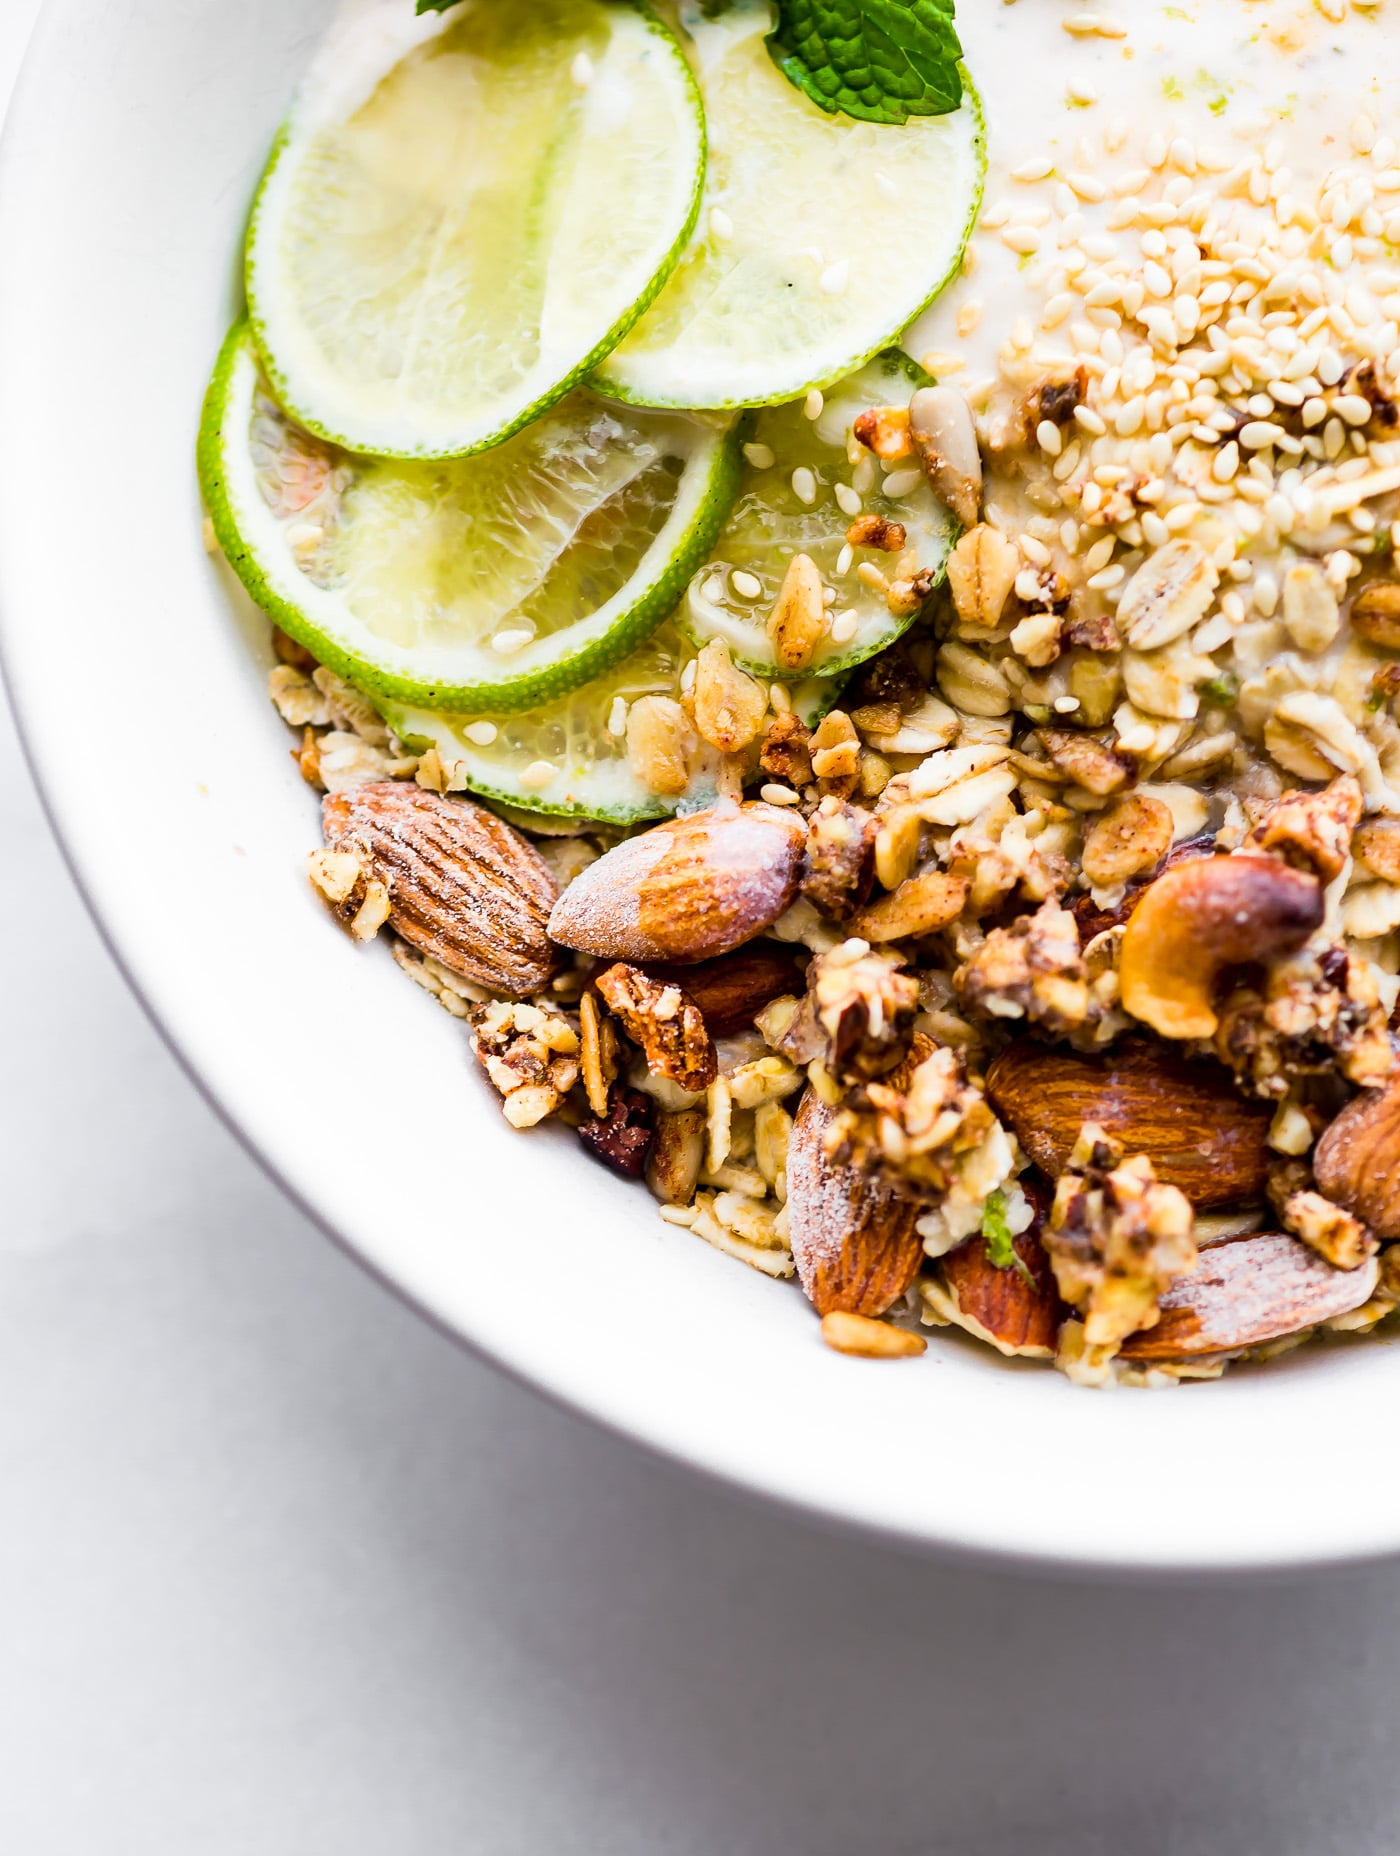 This Zesty Tropical Yogurt Overnight Muesli recipe is the perfect make ahead breakfast bowl! Gluten- free, nutrient rich, and made with Icelandic-style skyr coconut yogurt for a protein boost! www.cottercrunch.com